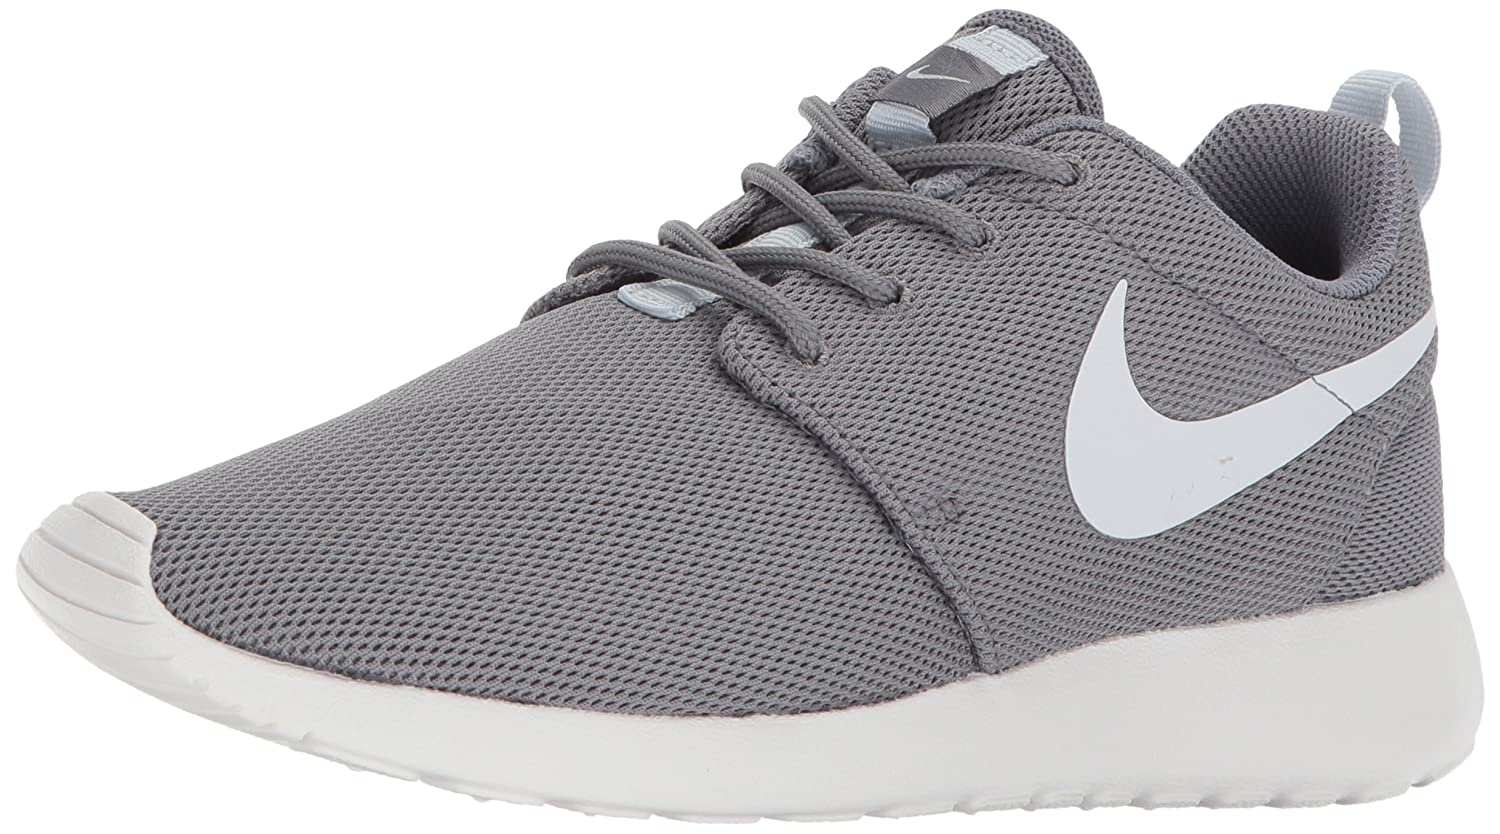 new products 805f1 e973c Amazon.com   Nike Womens Roshe One Running Shoes (7.5 B(M) US)(Cool Grey Summit  White Pure Platinum)   Road Running